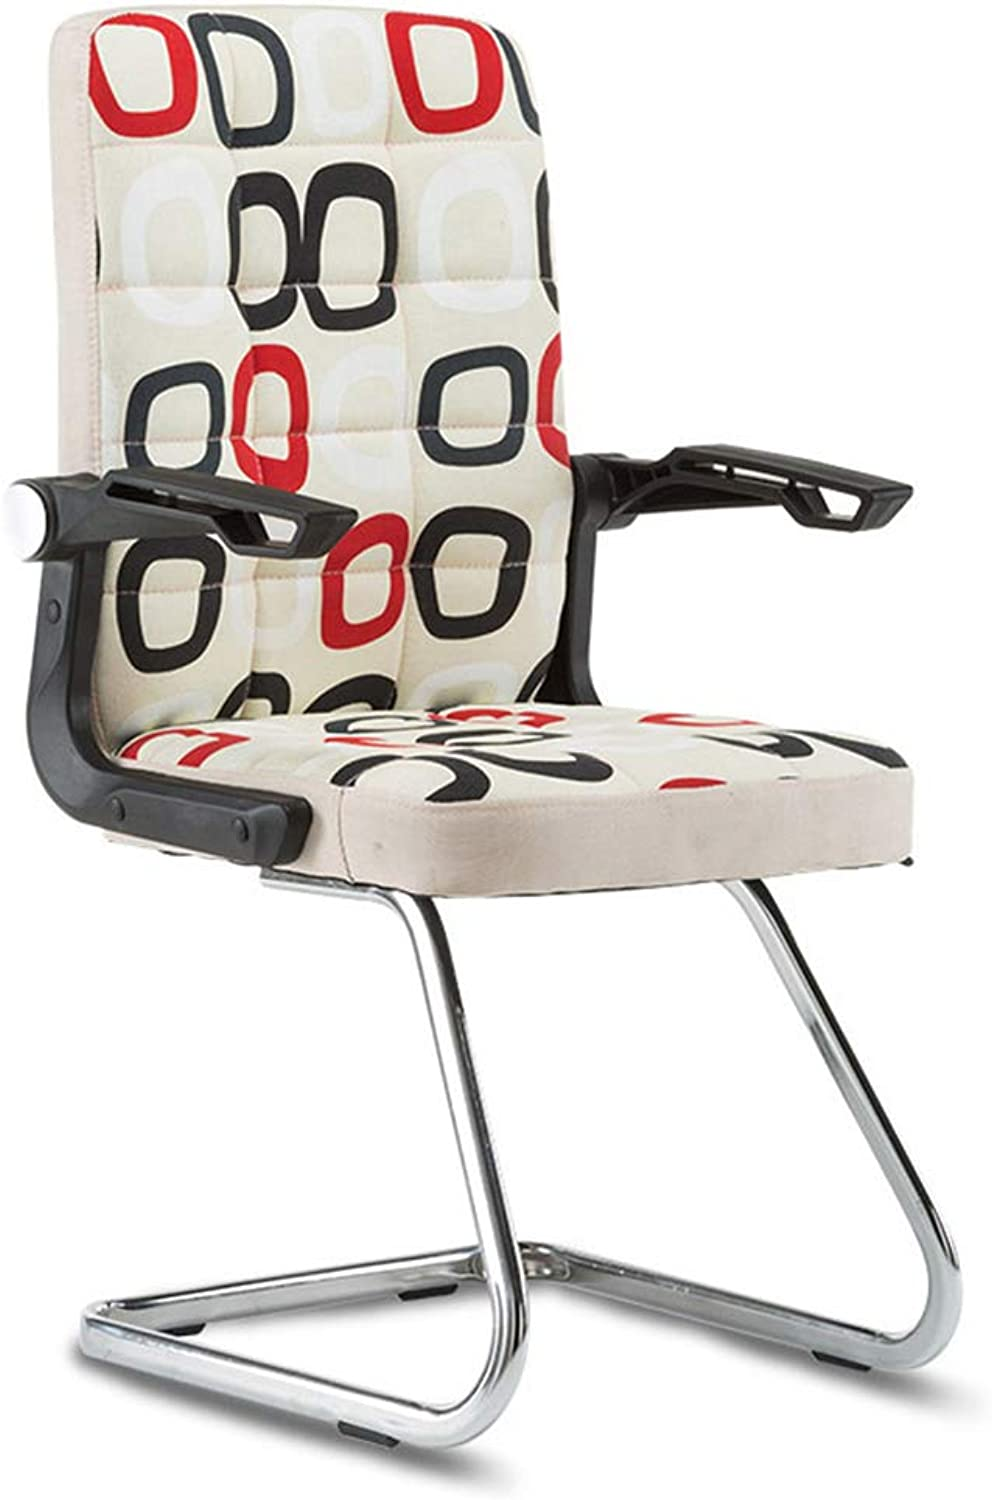 MEIDUO Chairs Office Chair,High Back Guest Chair with Folding Armrest Reception Chairs for Office Living Room Meeting Room (color   A (Fabric))